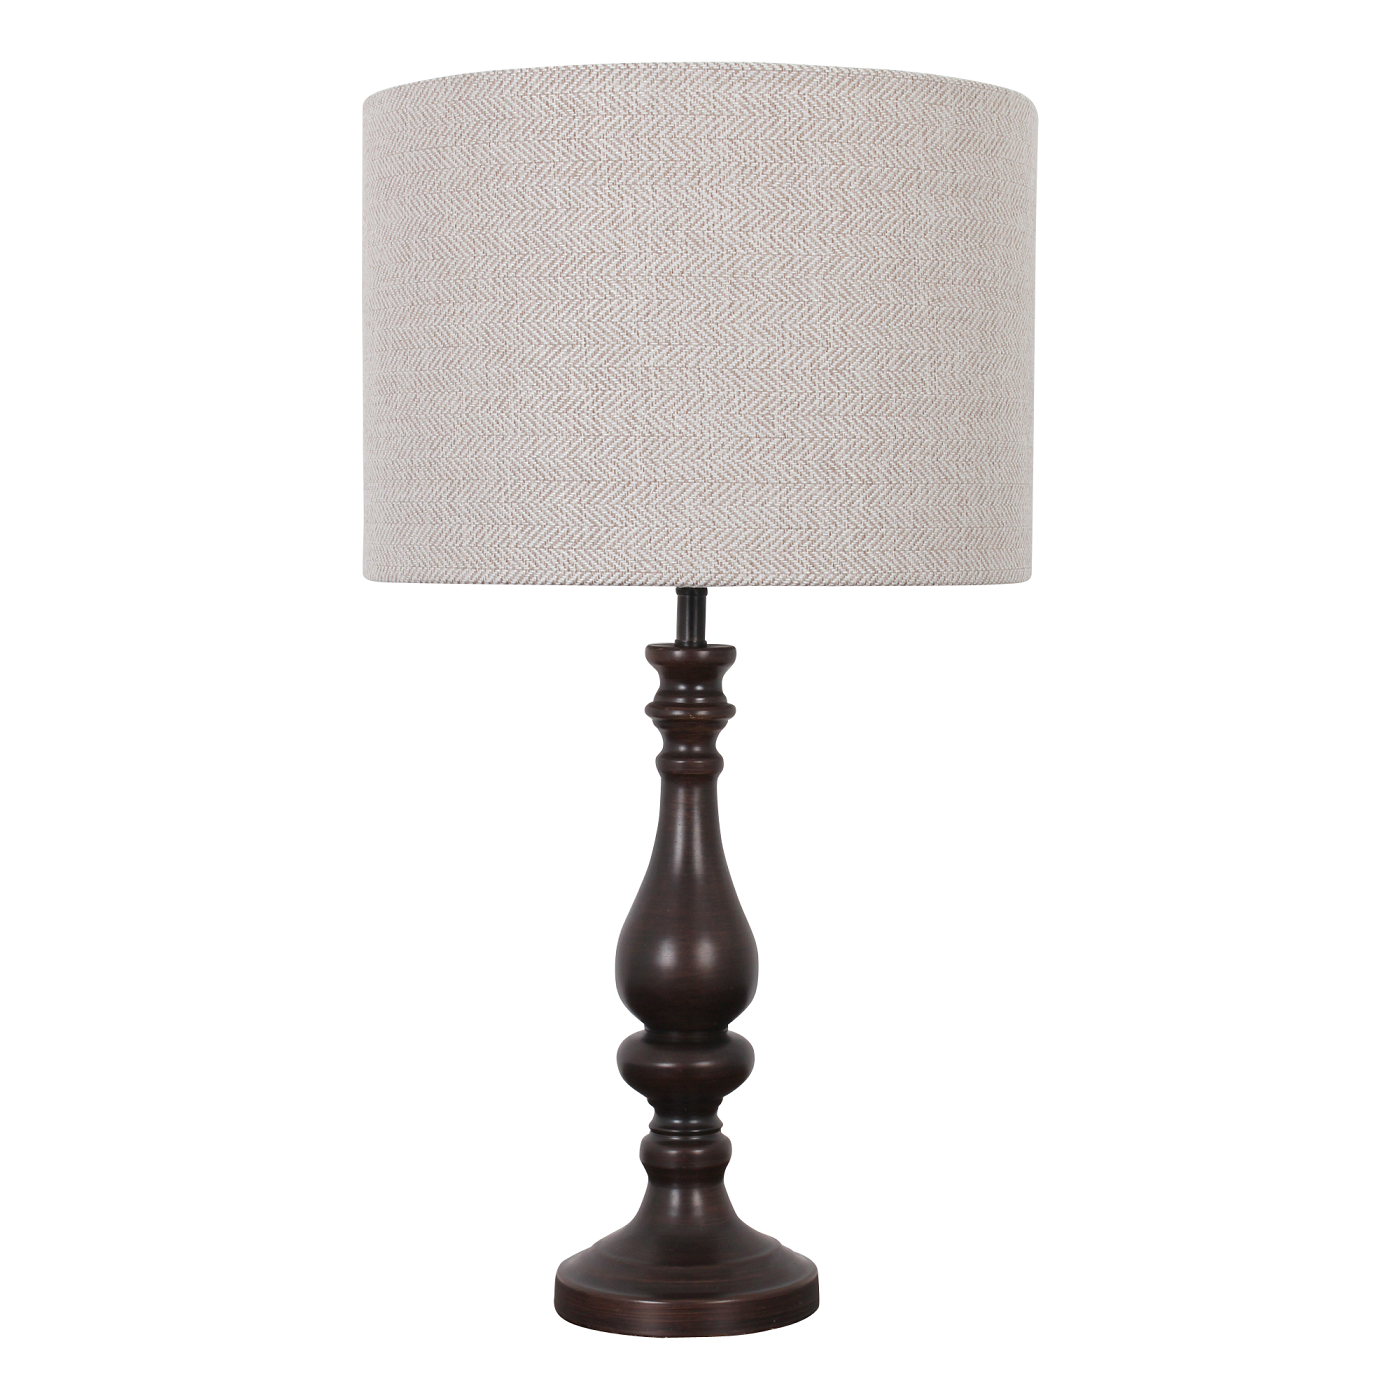 Pair of tall modern dark metal table lamps with for Modern bedside table lamps